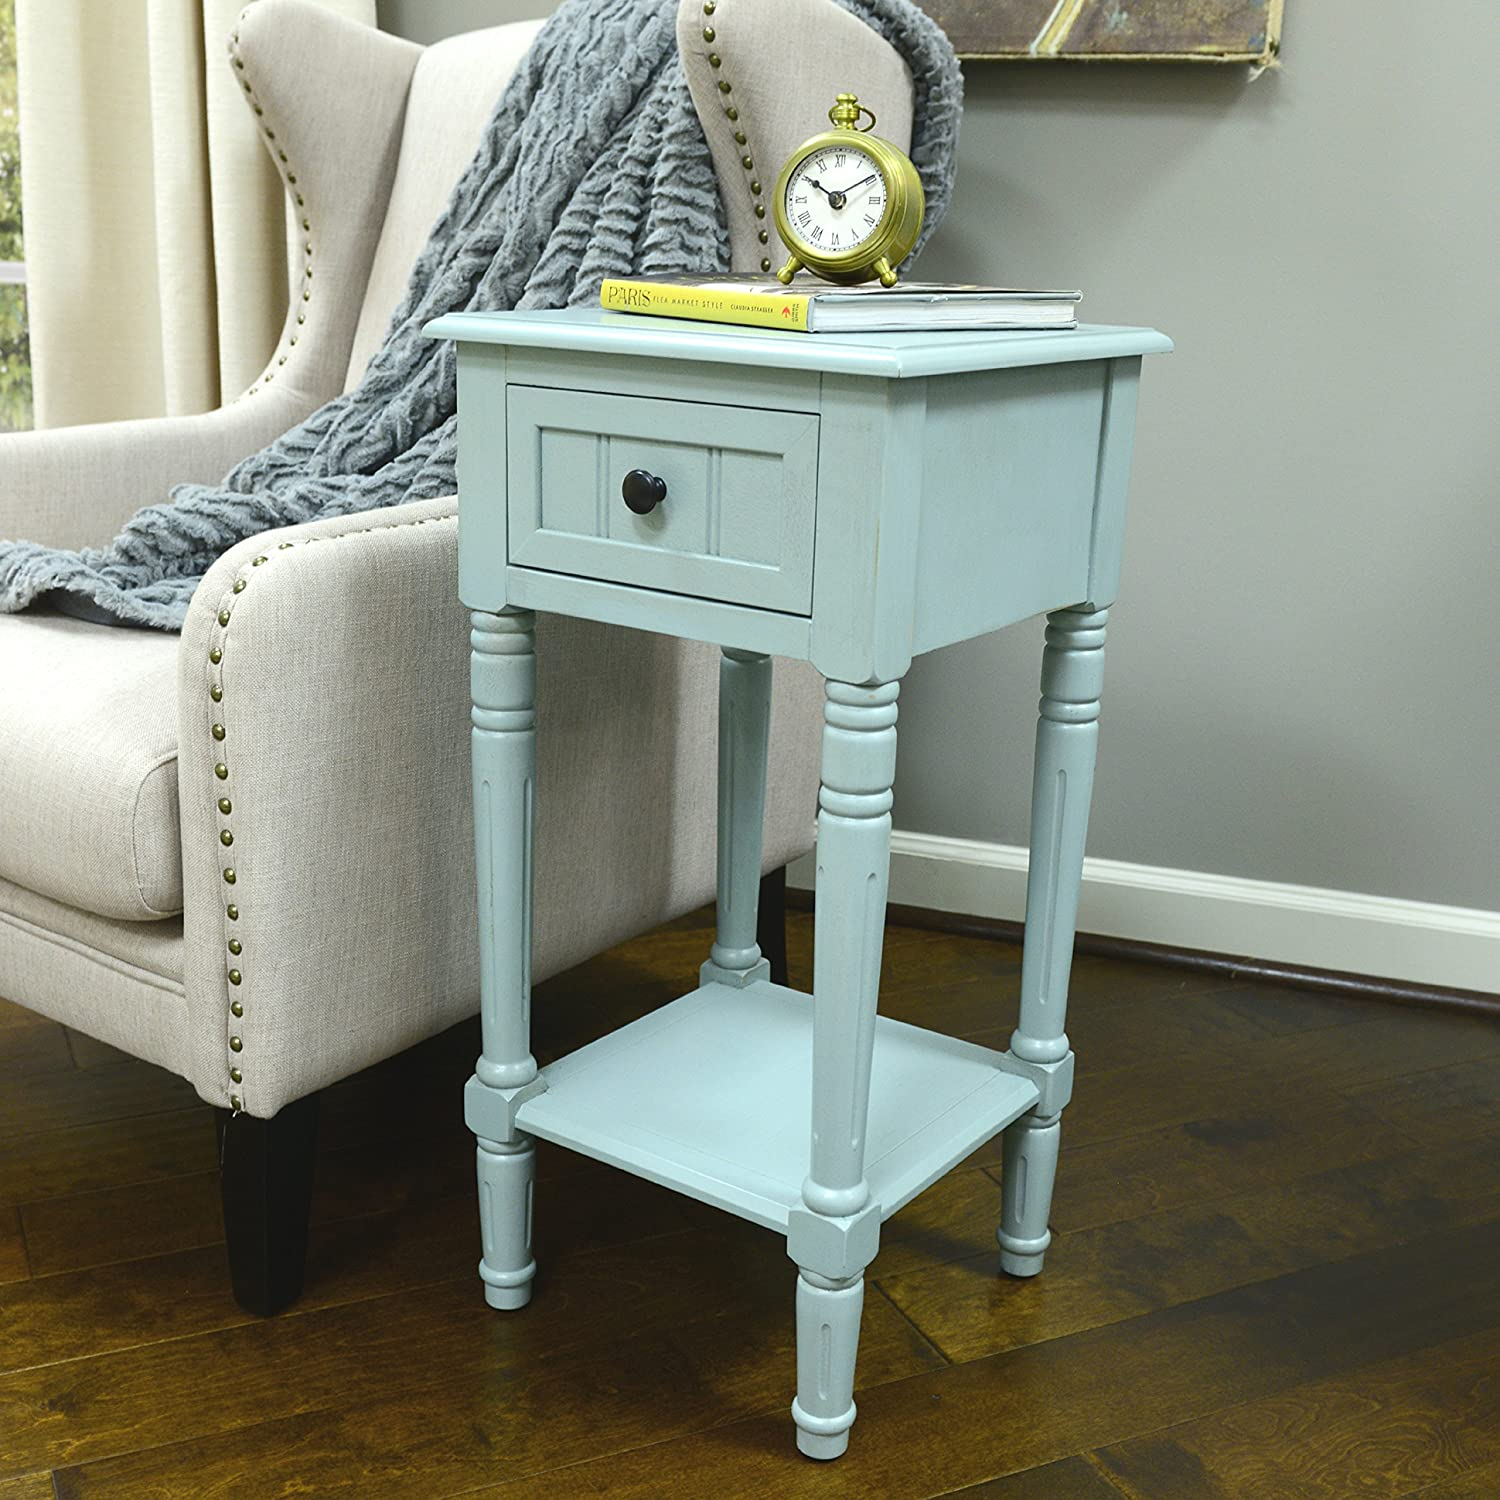 Décor Therapy FR1550 Simplify One Drawer Square Accent Table, Antique Iced bluee